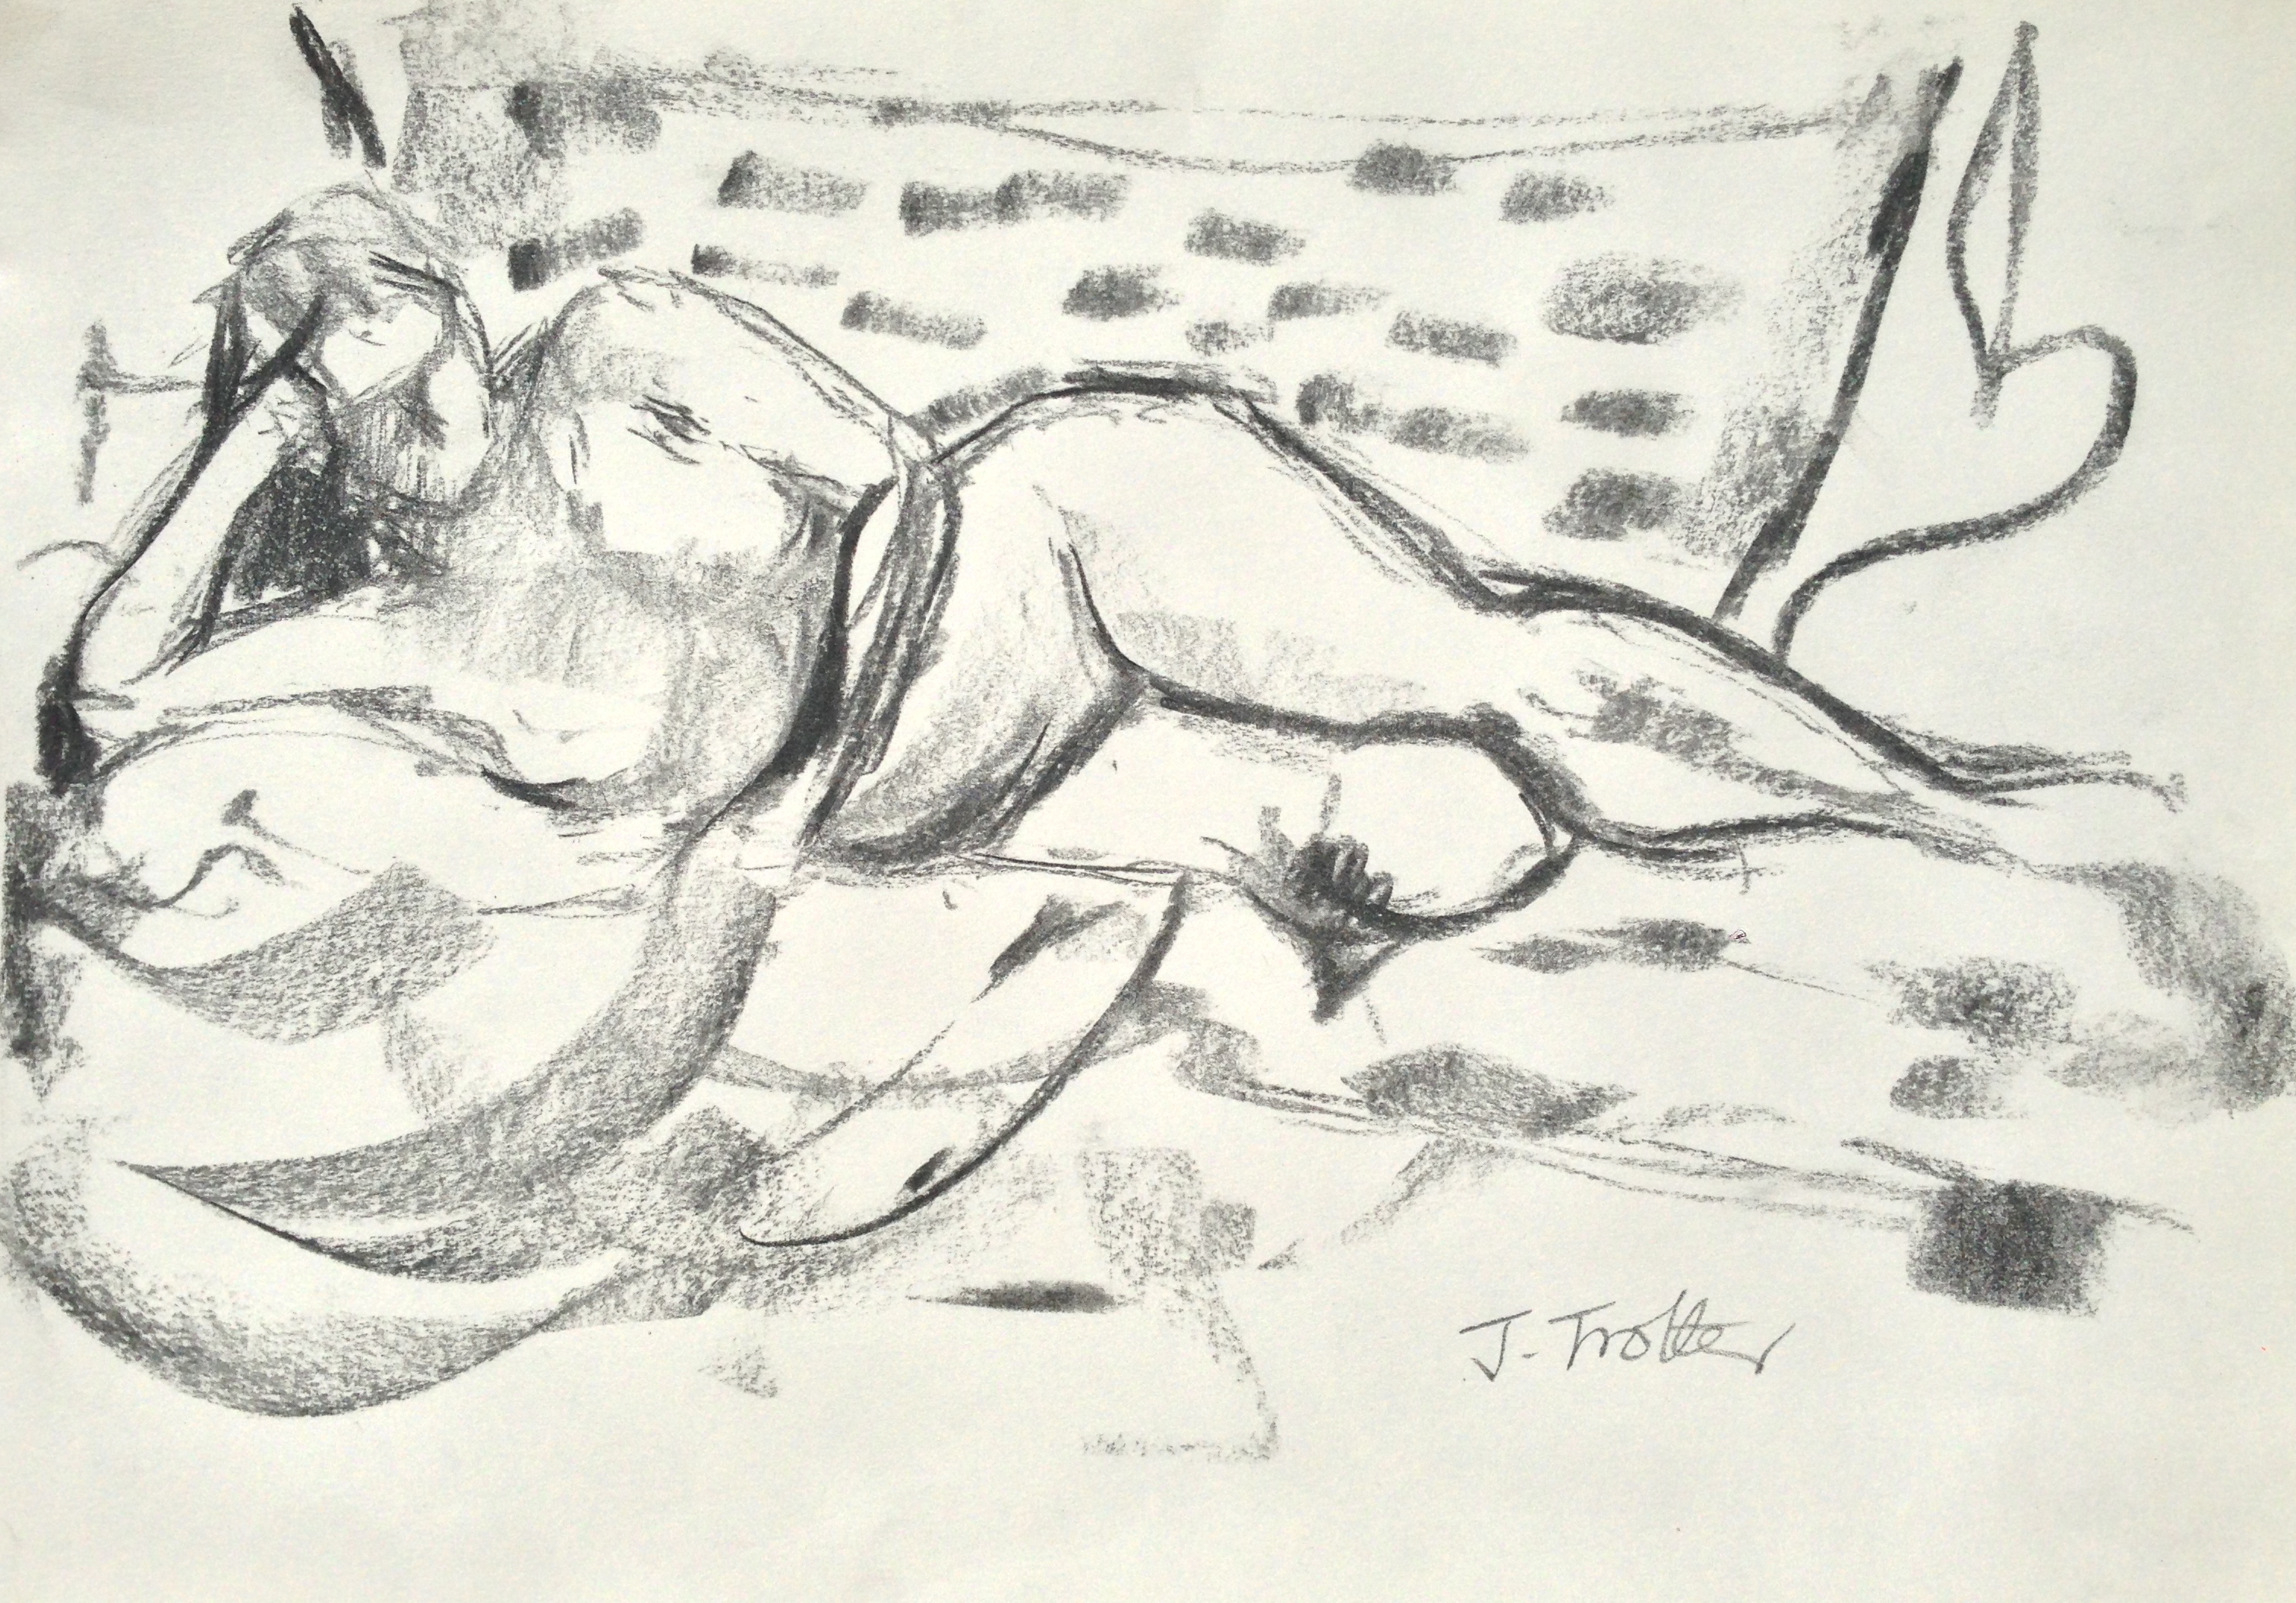 Lot 44 - Josephine Trotter Untitled Charcoal on paper Executed in 2013. 25.5 x 40cm. English contemporary